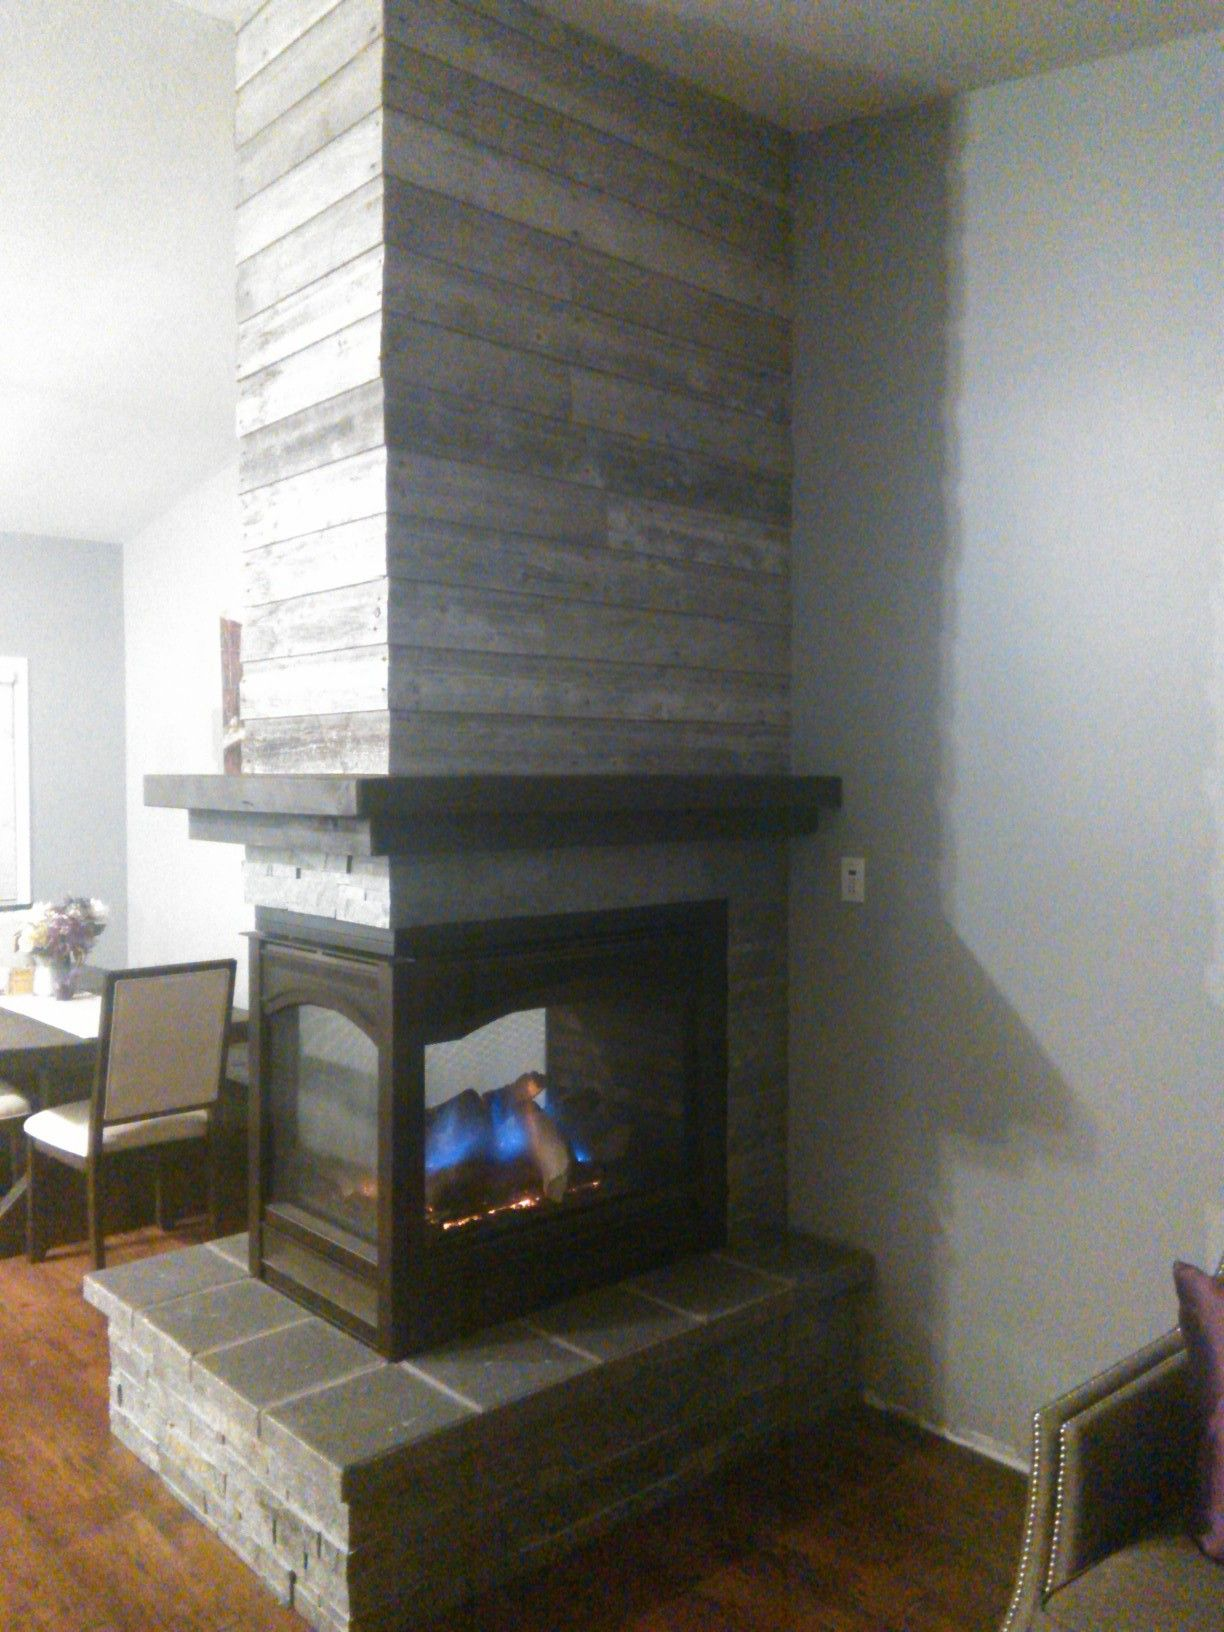 3 Sided Fireplace With Barnboard Stone Fireplace Designs 3 Sided Fireplace Fireplace